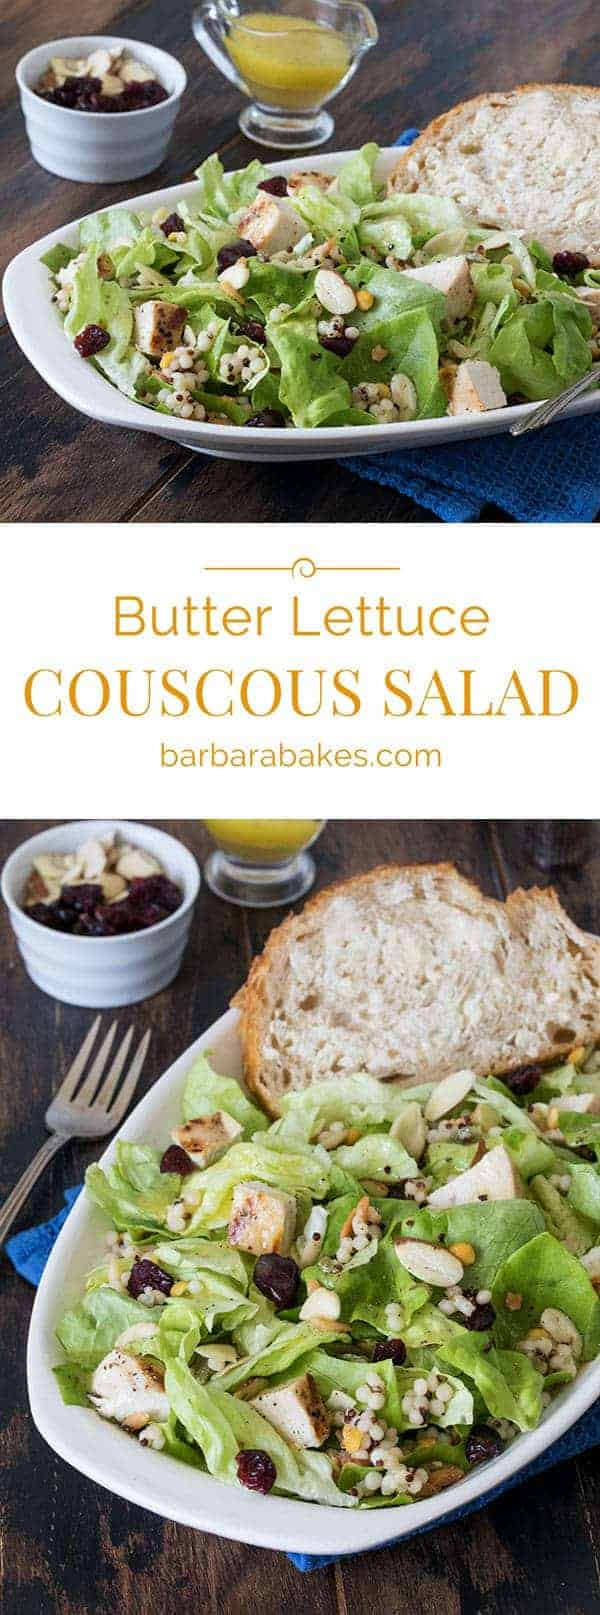 Butter Lettuce Couscous Chicken Salad Collage